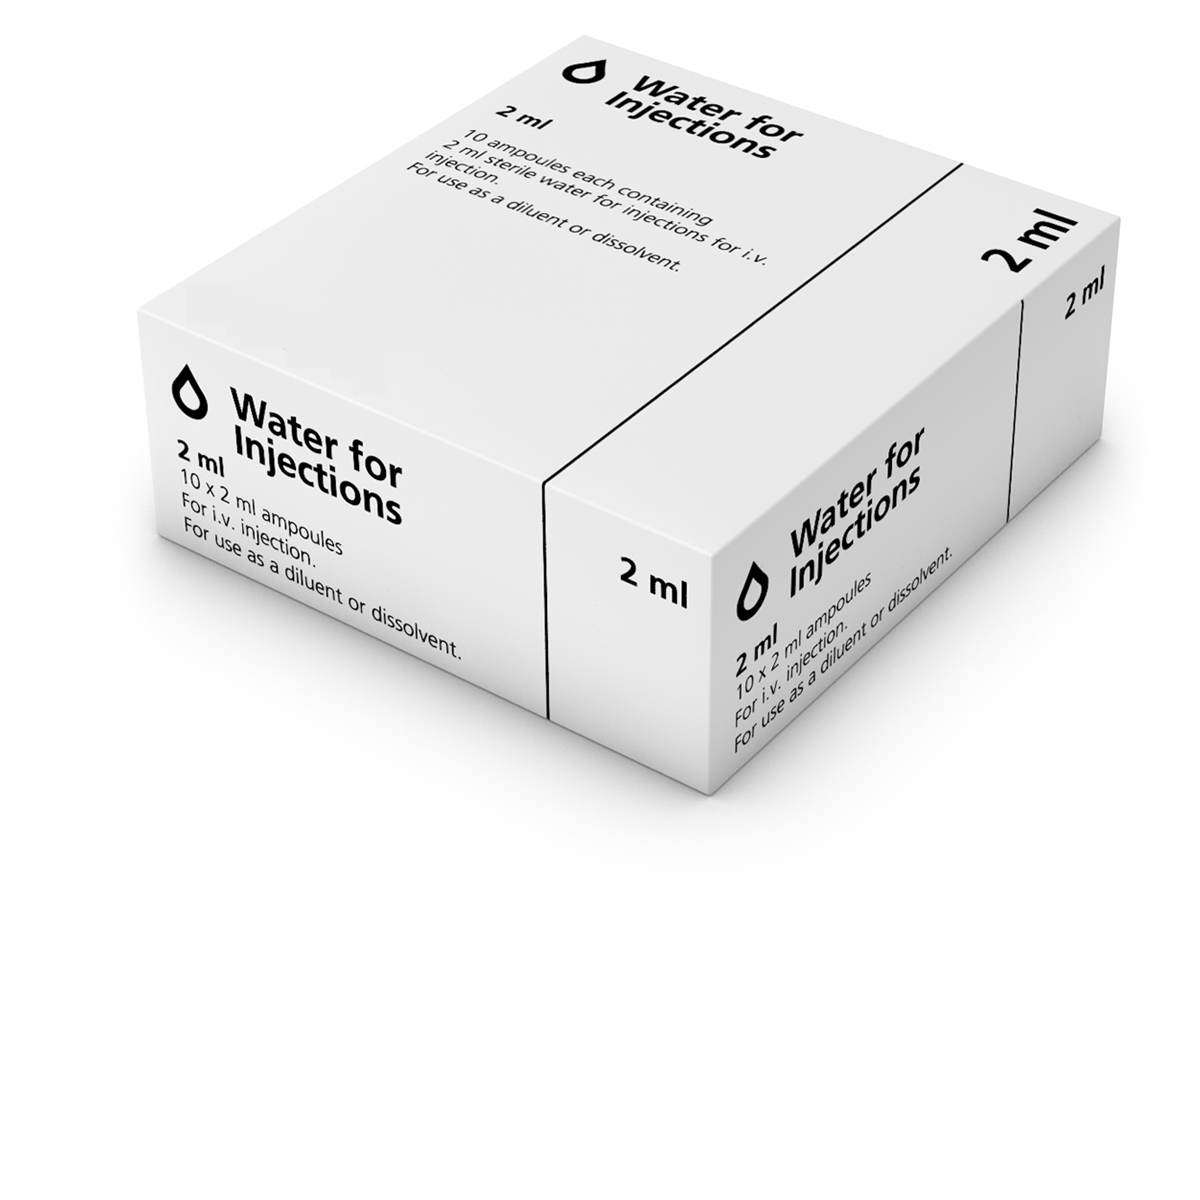 (POM) Water for Injection Ampoule 2ml | Medical Supermarket